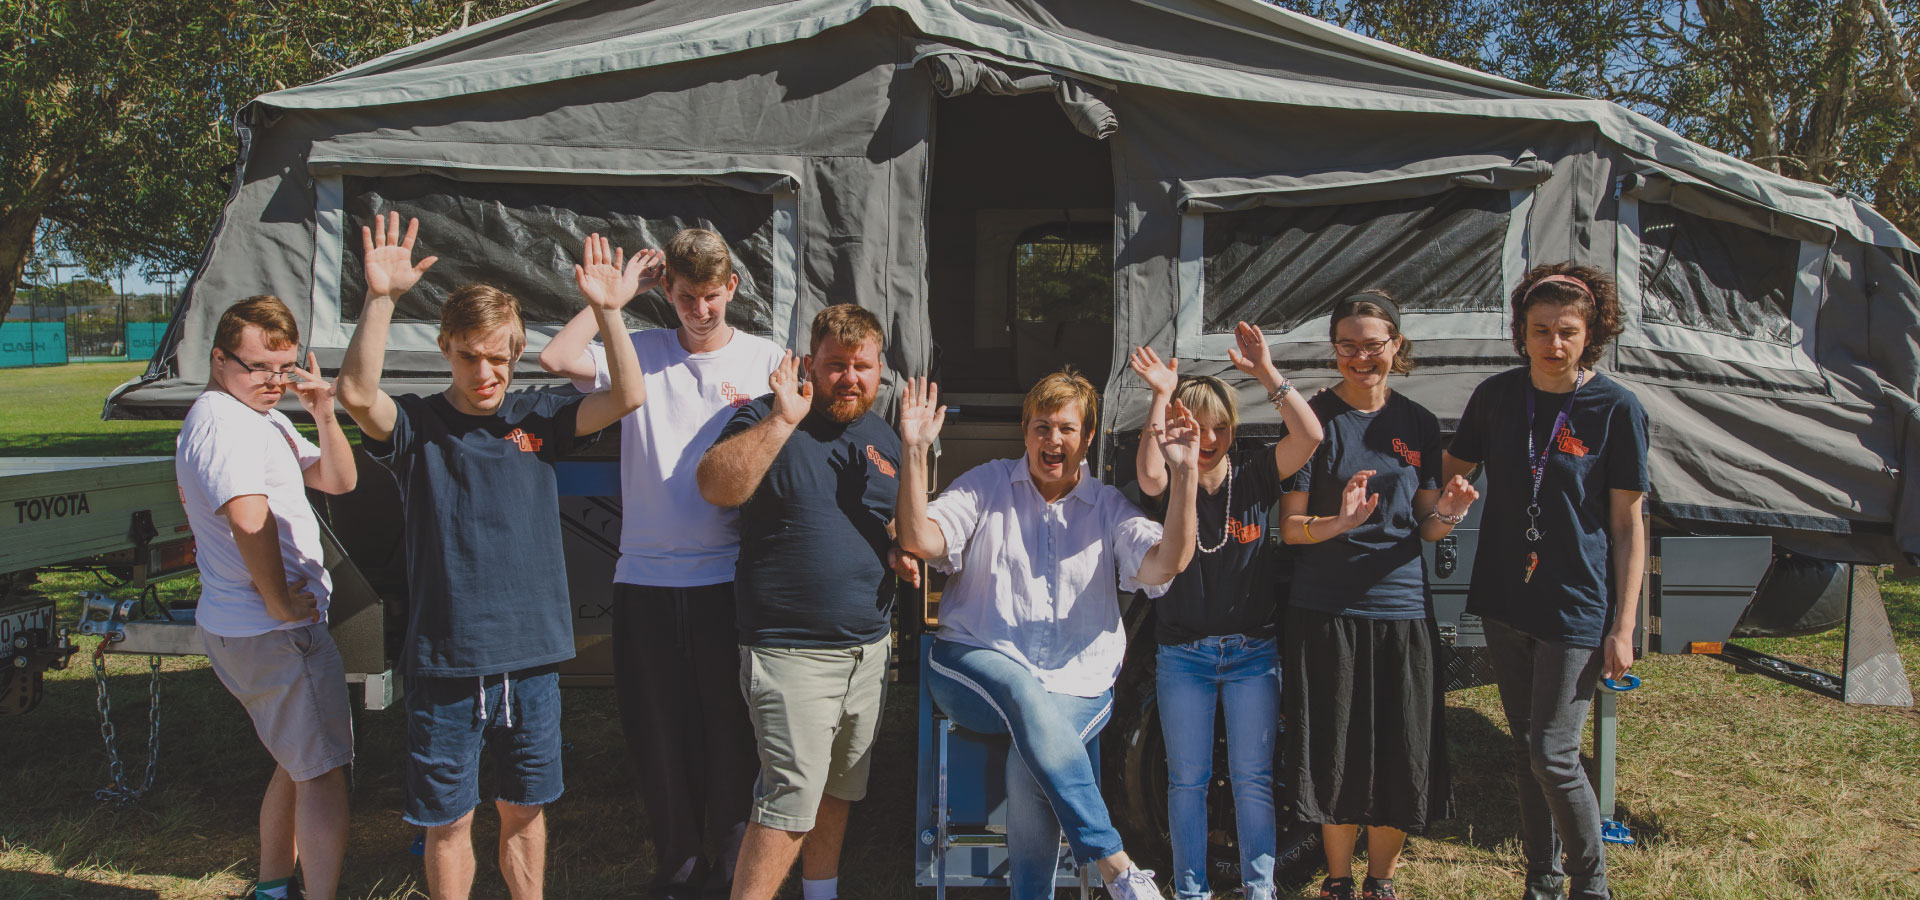 Students in front of camper trailer